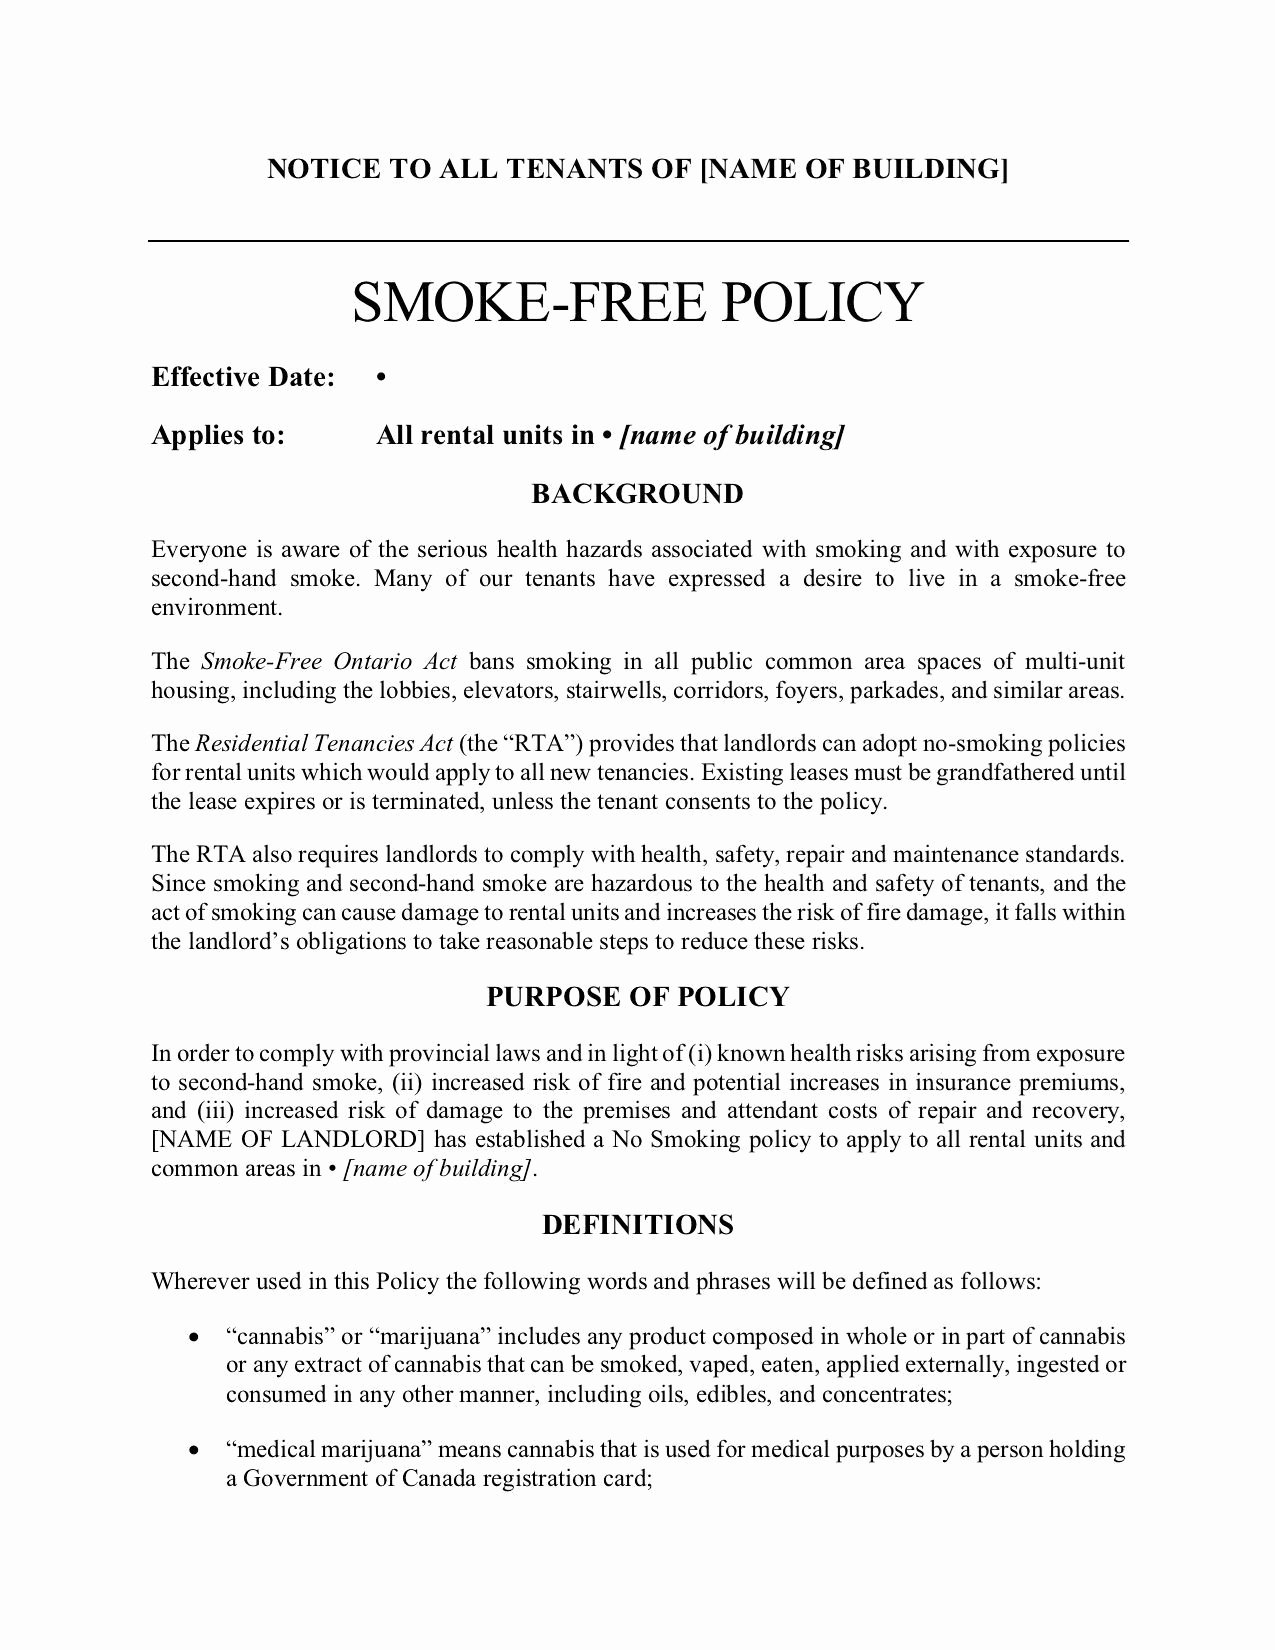 No Smoking Policy Template Inspirational Tario Smoke Free Policy for Rental Building